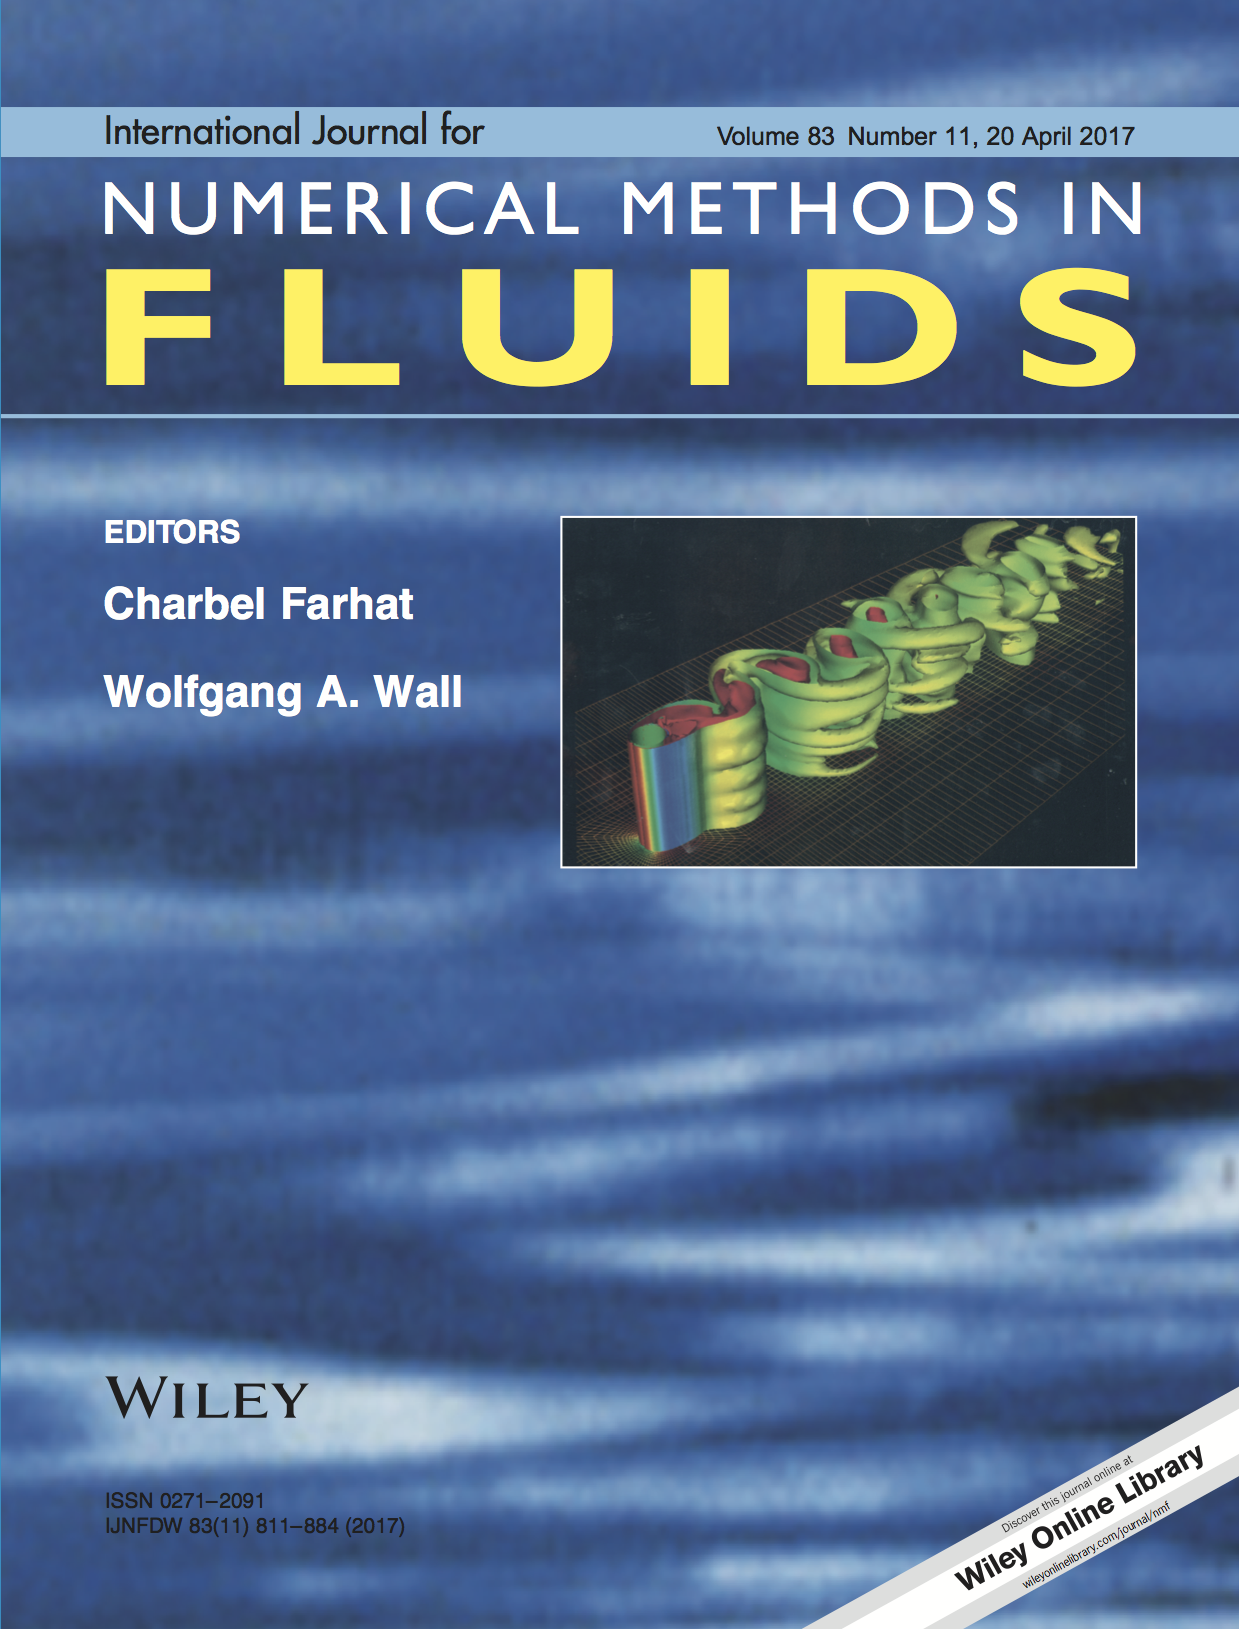 Template for submissions to International Journal for Numerical Methods in Fluids